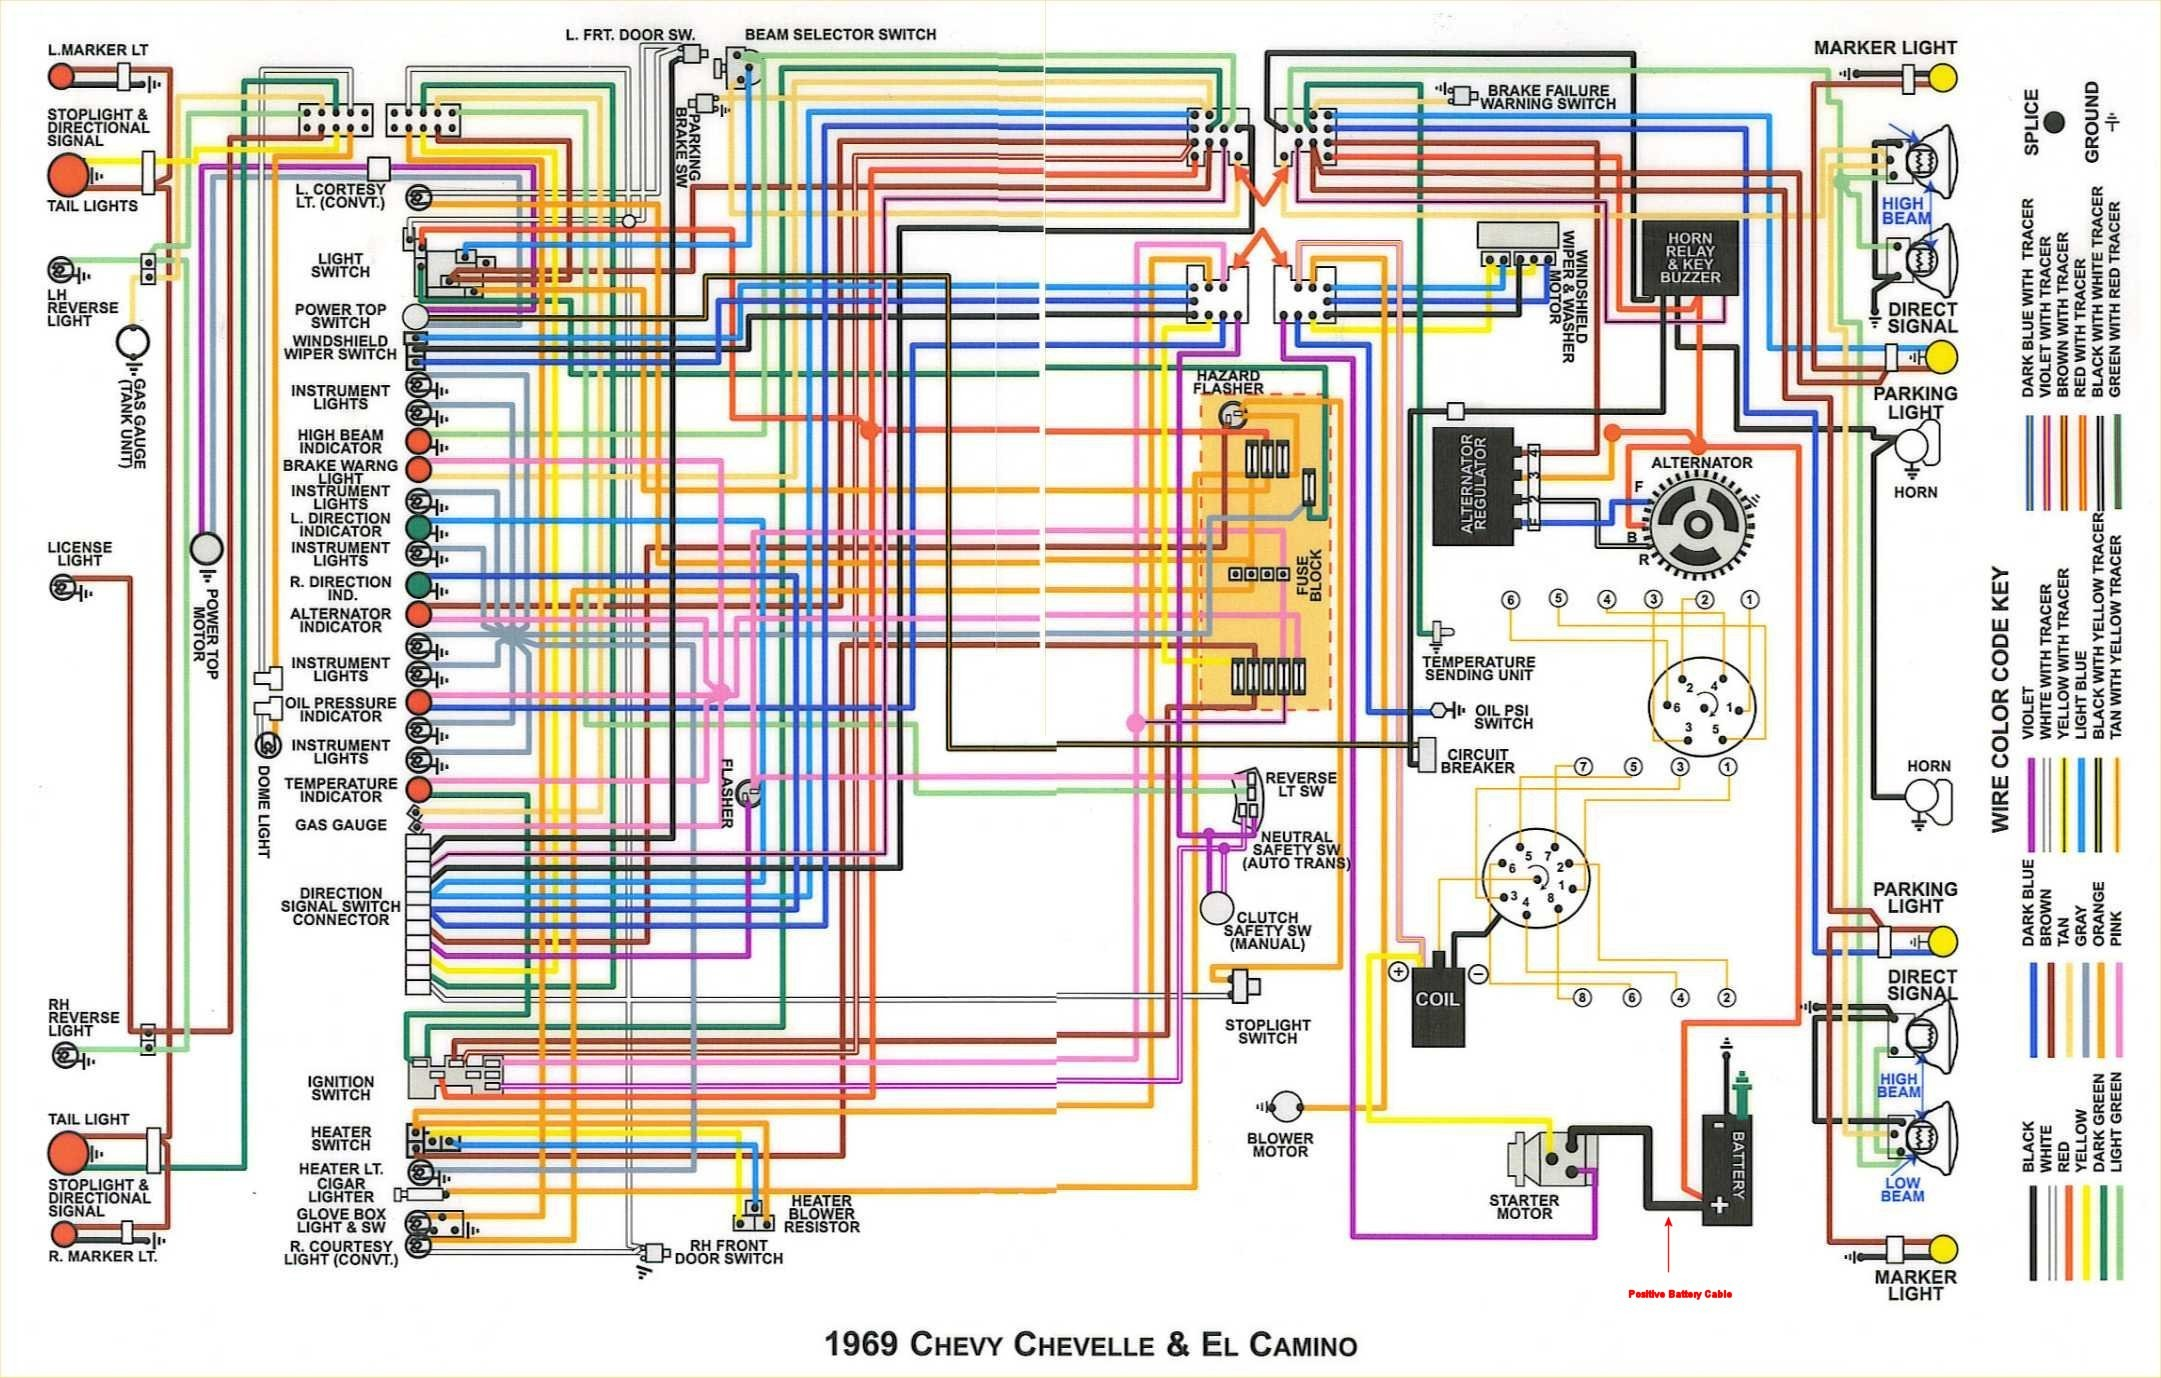 1968 Chevelle Wiring Diagram Chevelle Wiring Diagrams Line 1967 Chevelle Wiring Harness Diagram Of 1968 Chevelle Wiring Diagram